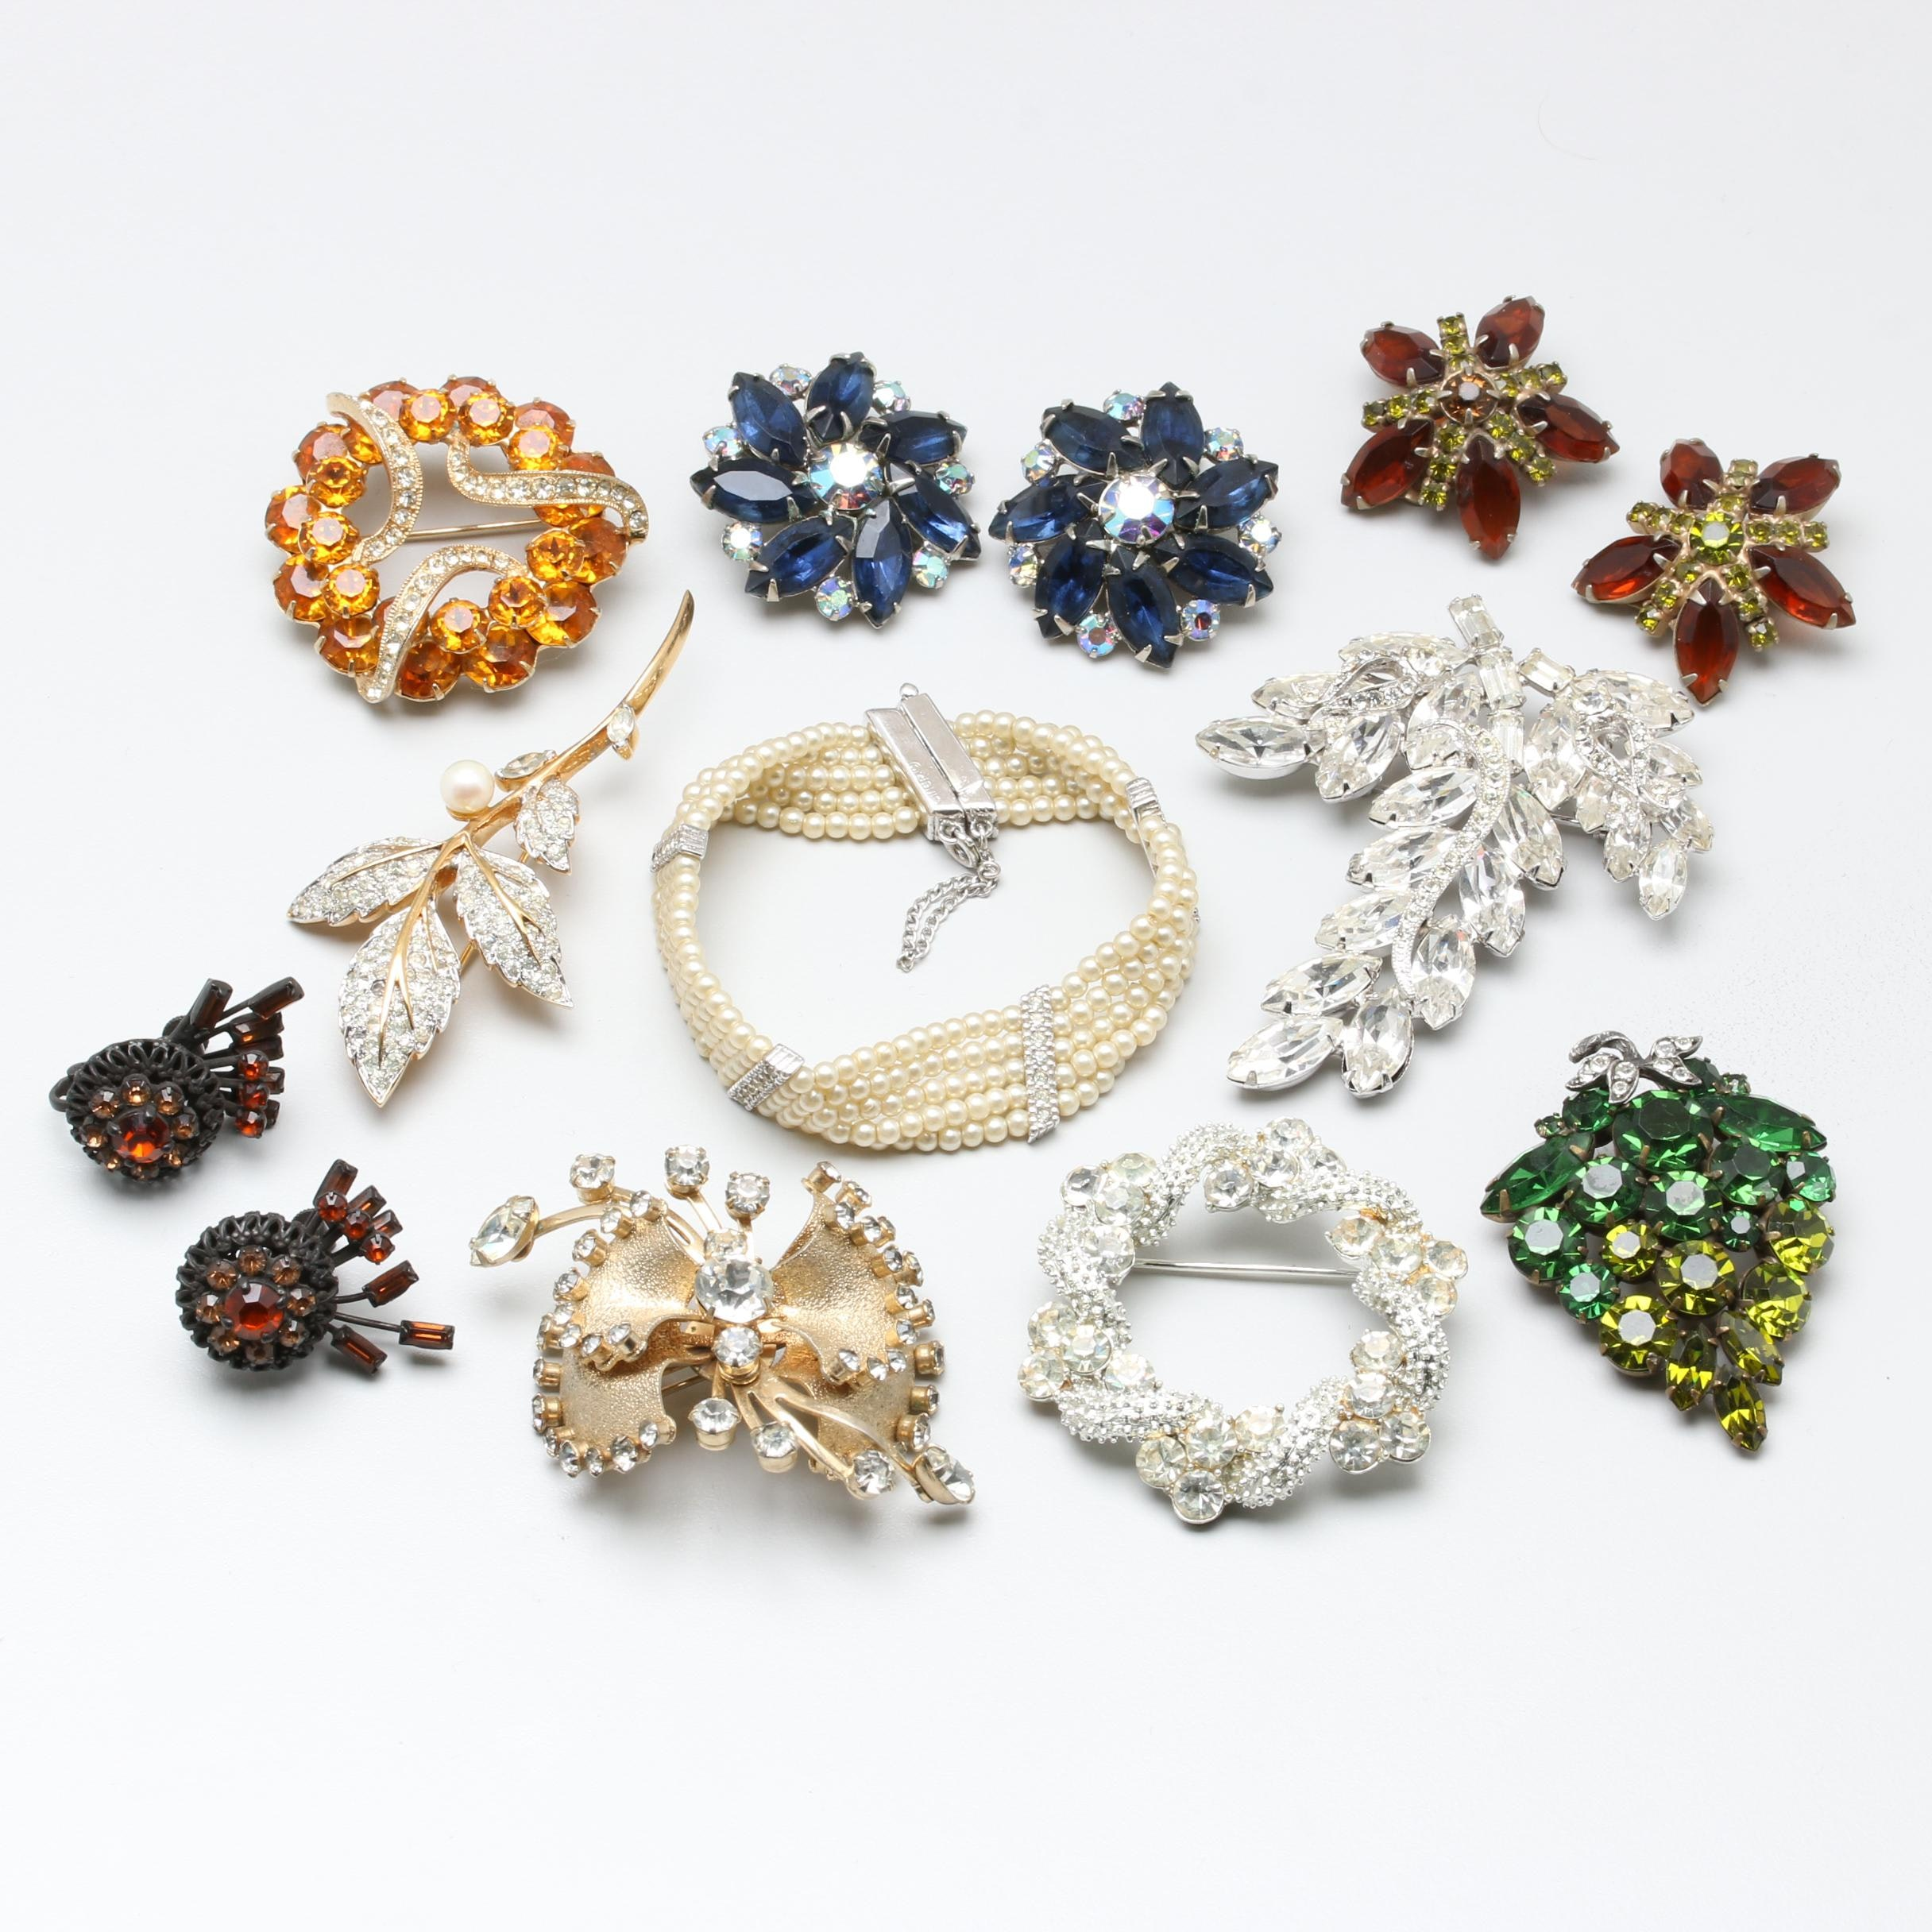 Vintage Jewelry Featuring Coro, Lisner, Weiss, and Kramer